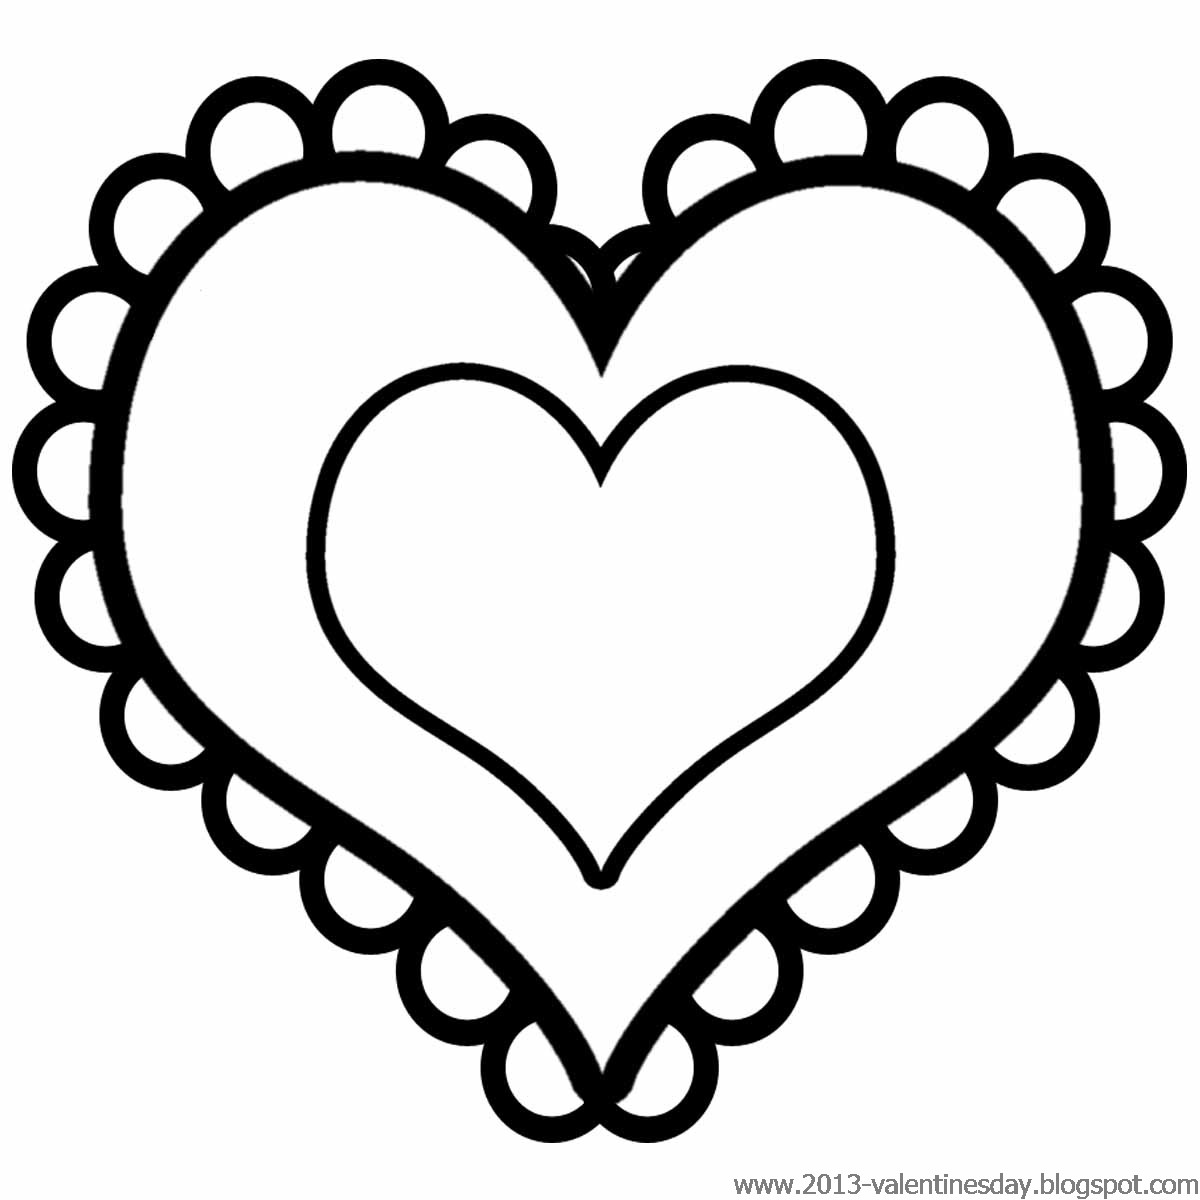 Clipart Black And White Pearl .-Clipart Black And White Pearl .-10